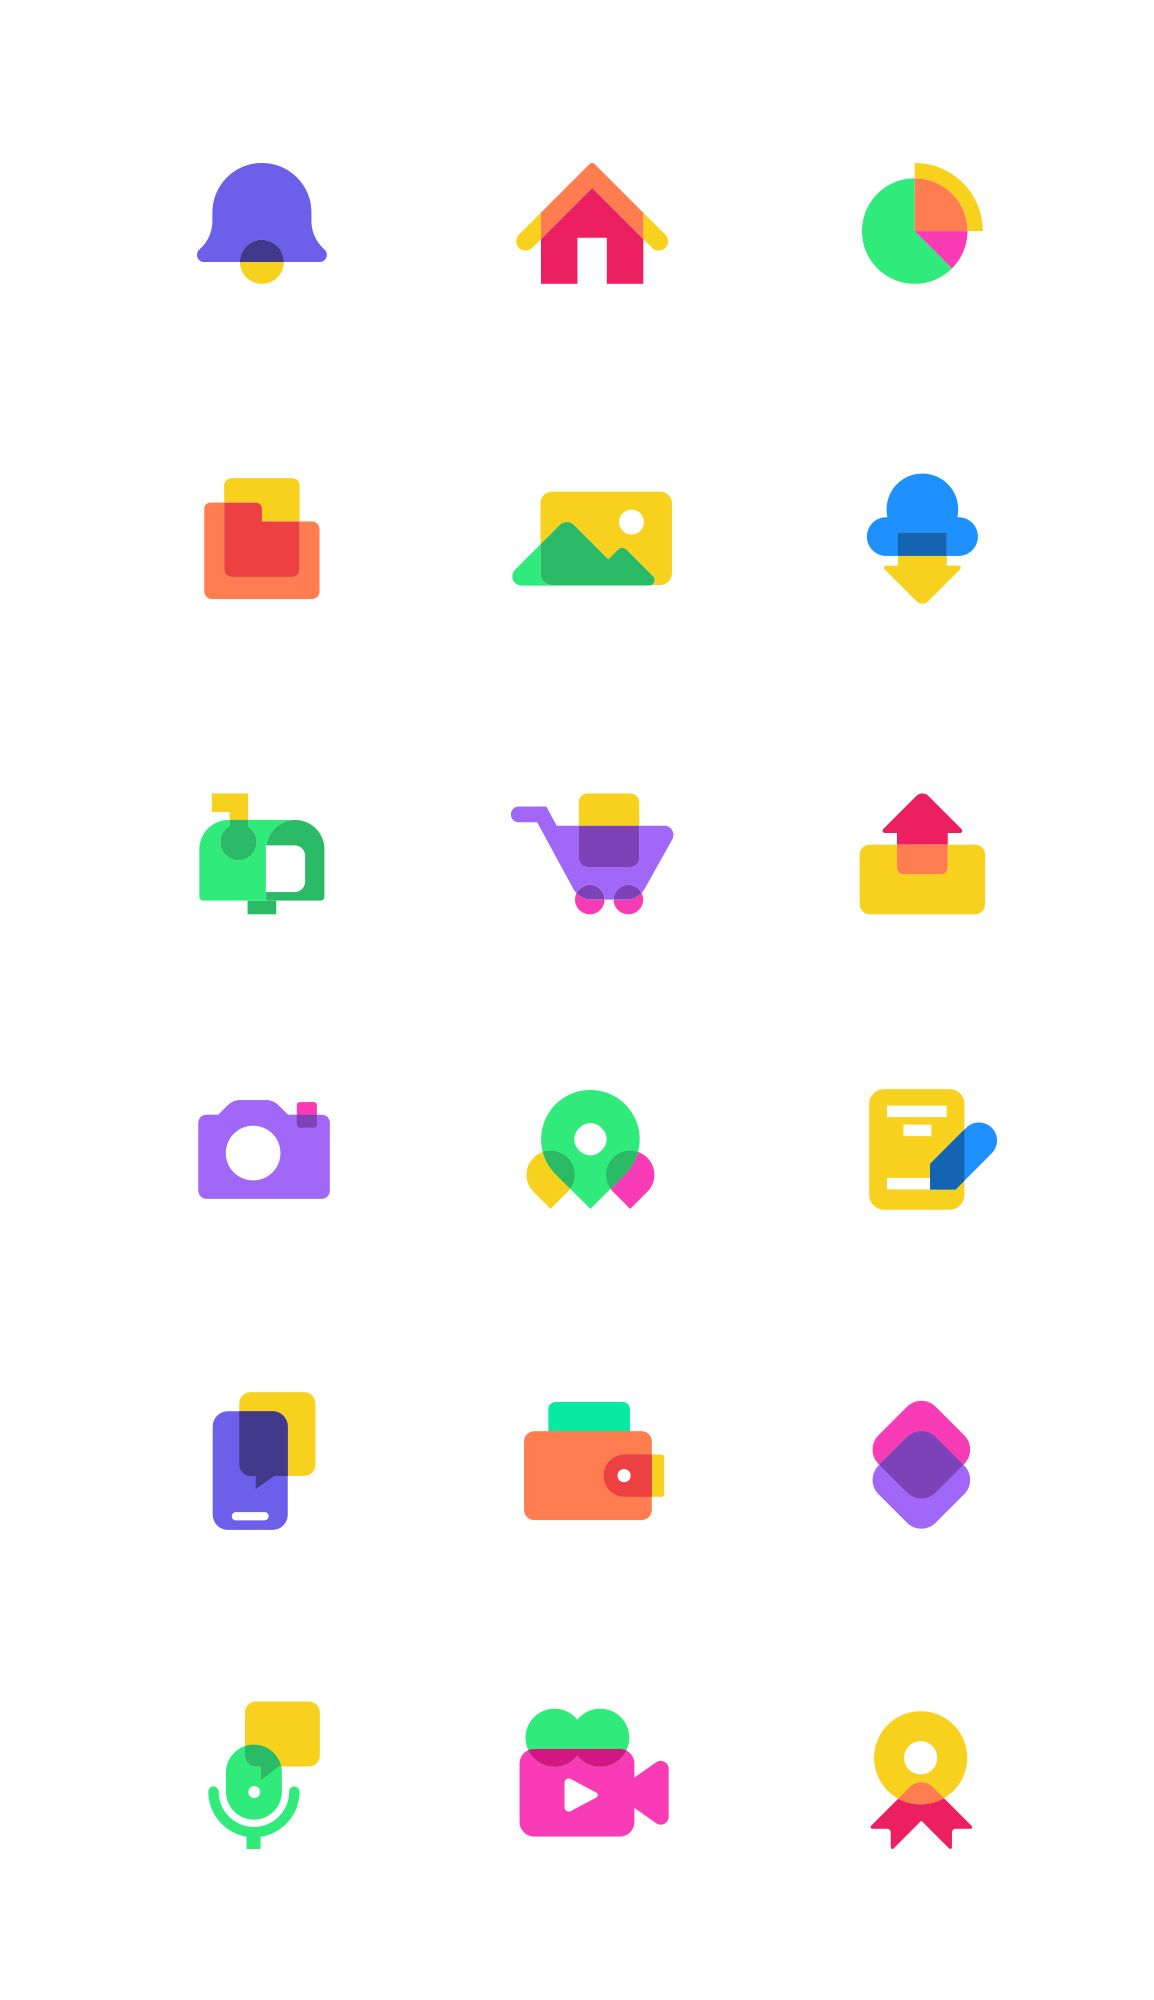 Colorful Icons 2 Gigantic Flat Design Illustration And 2d Animation In 2020 Flat Design Icons Icon Set Design Icon Design Inspiration